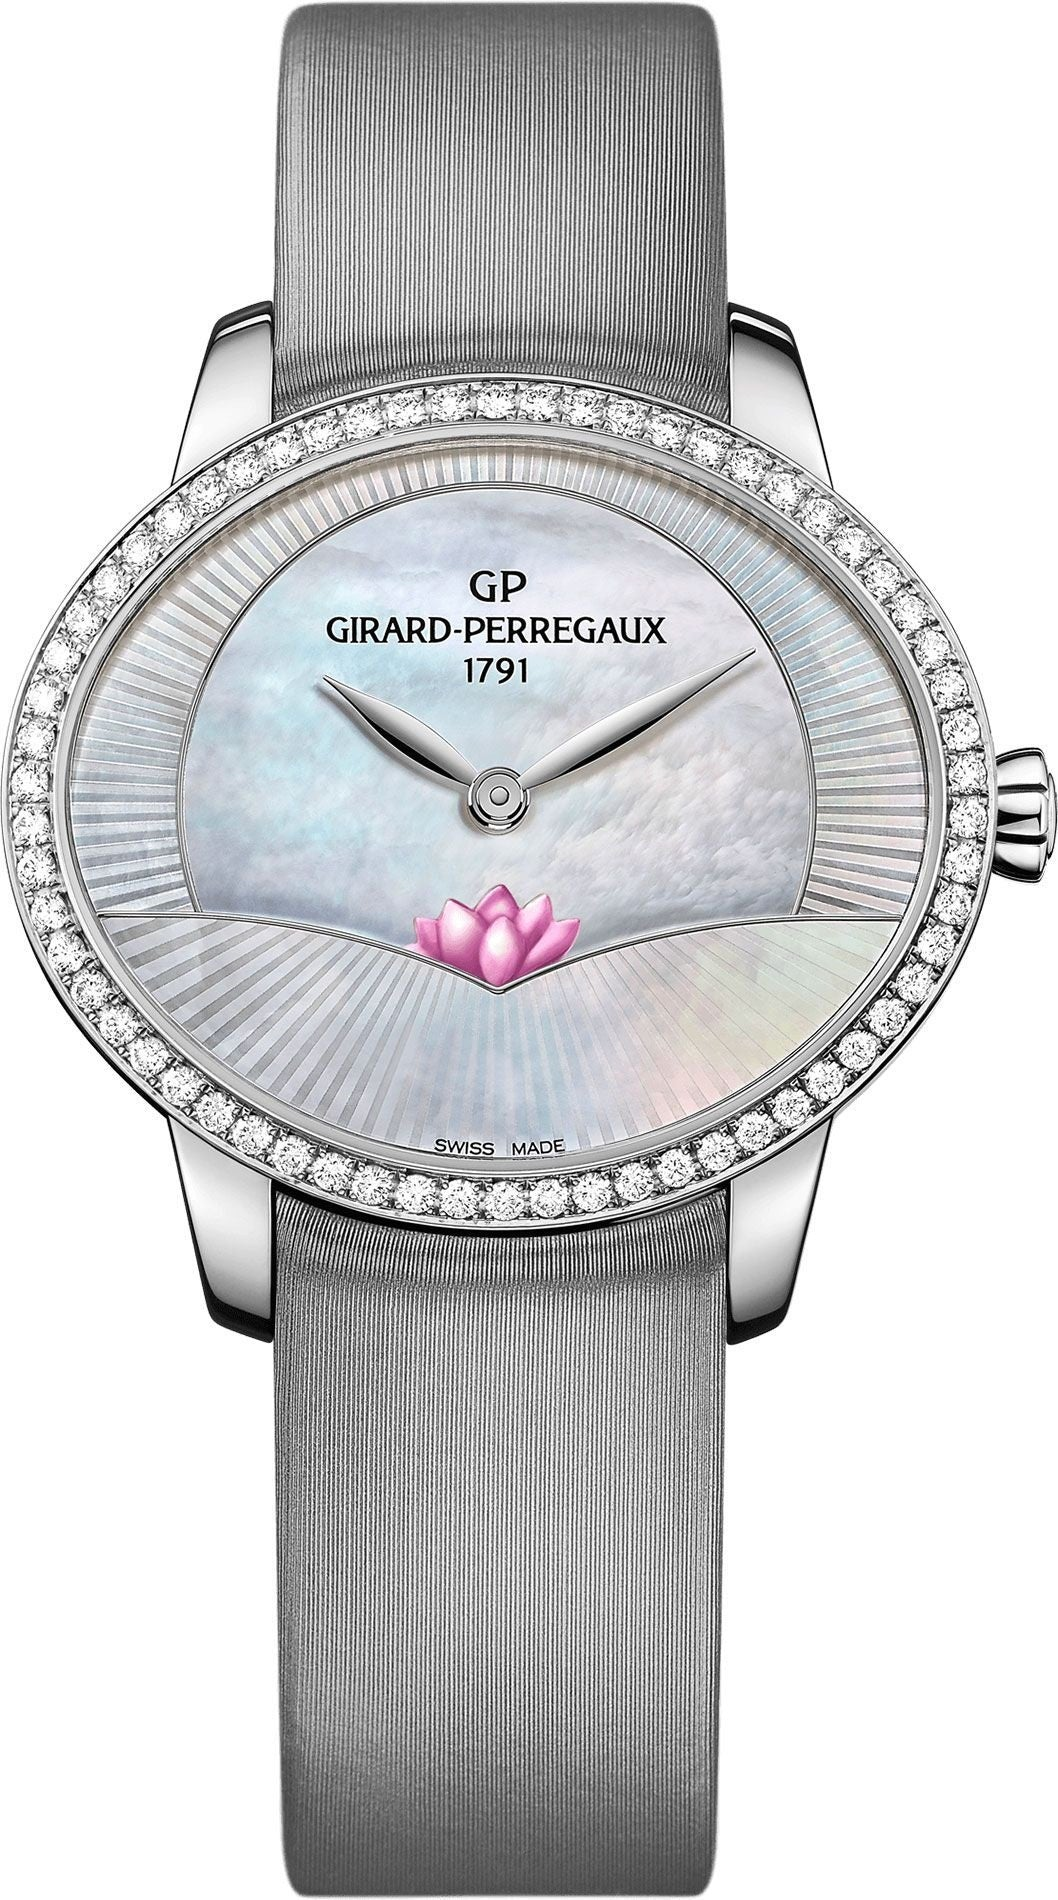 GIRARD-PERREGAUX CAT'S EYE LOTUS